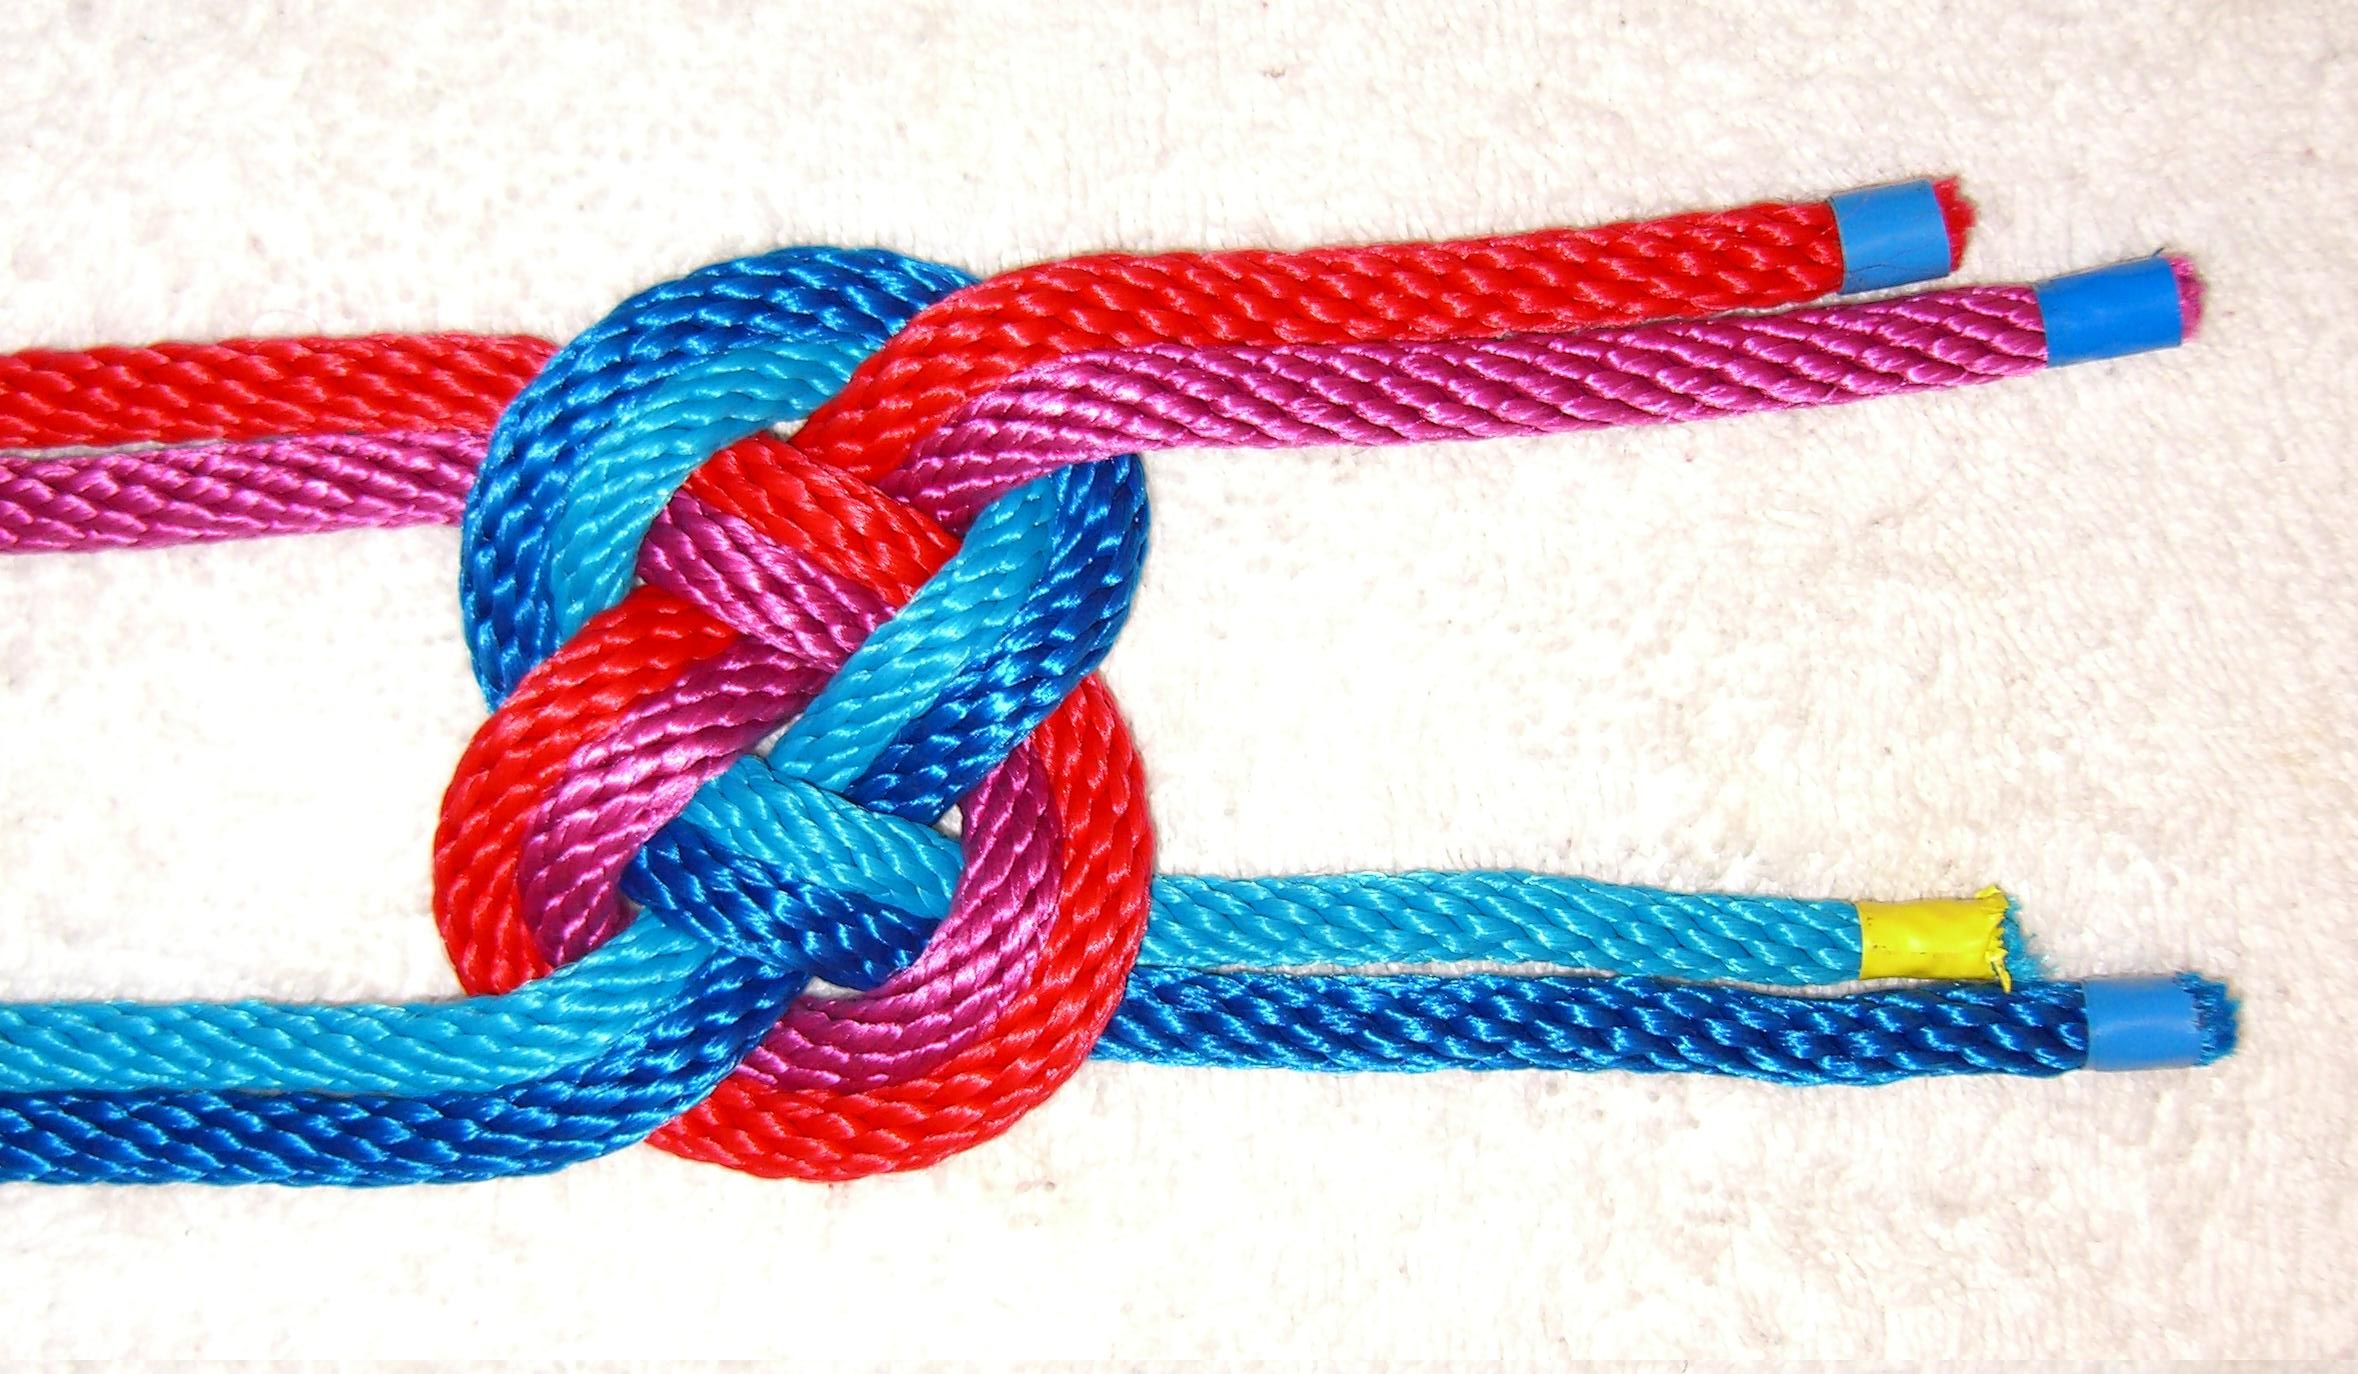 Cat's Paw Fishing Knot Tutorials for Jewelry Making